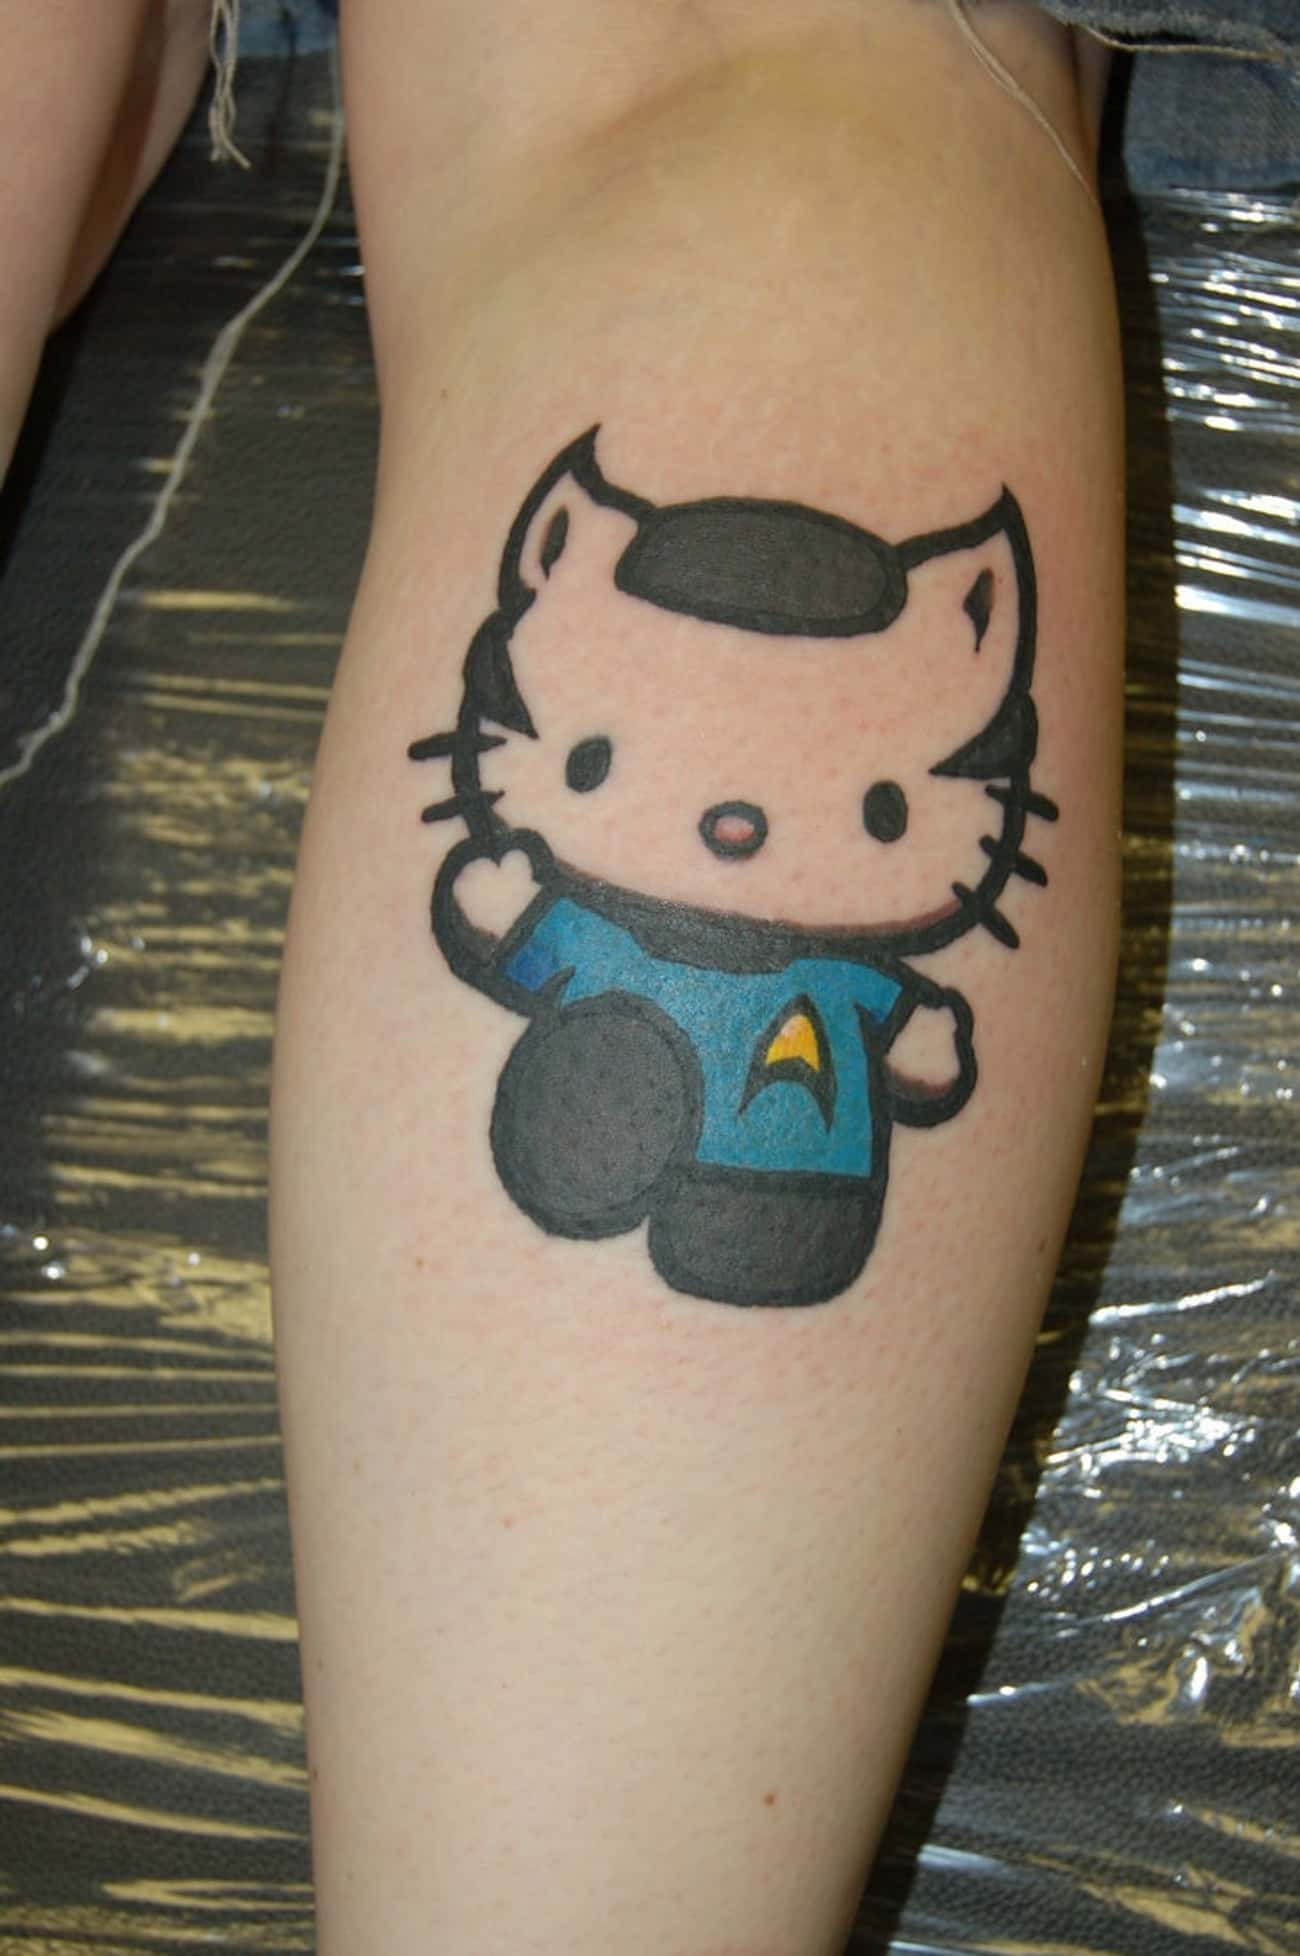 Hello Spocky is listed (or ranked) 4 on the list 33 Star Trek Tattoos That Go Beyond the Final Frontier